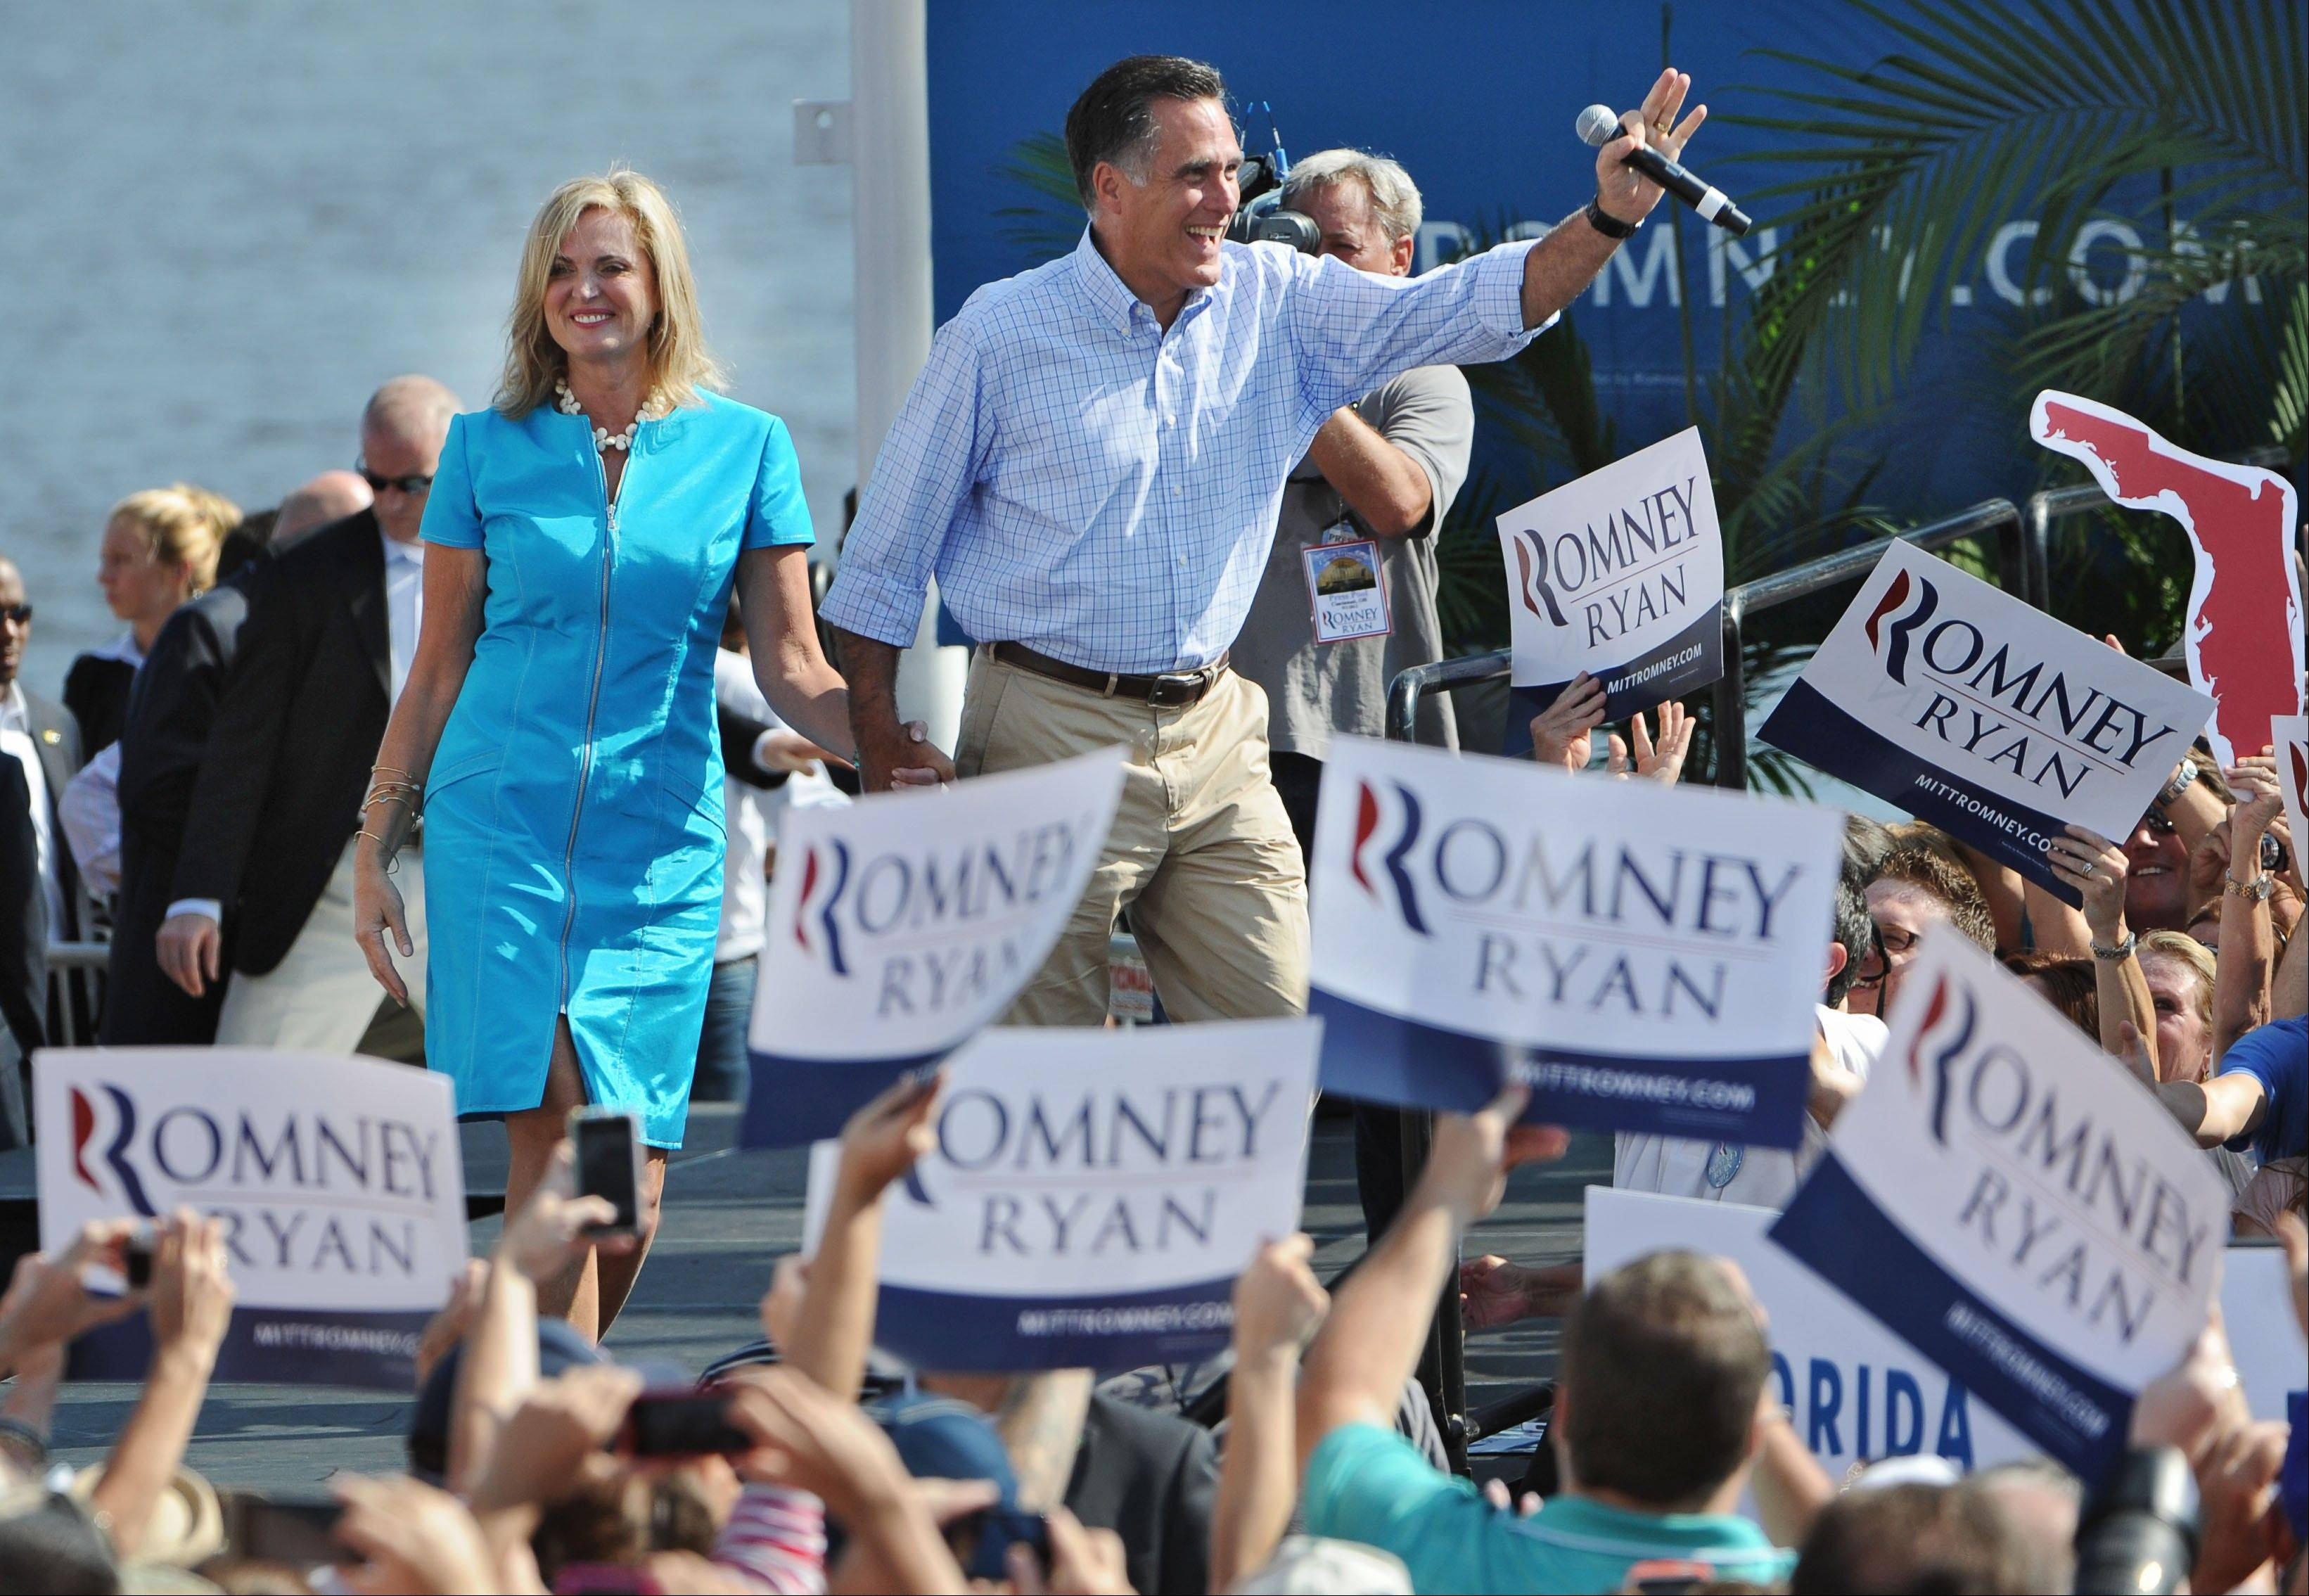 Republican presidential candidate, former Massachusetts Gov. Mitt Romney and his wife Ann take the stage Saturday for a campaign appearance in Jacksonville, Fla.